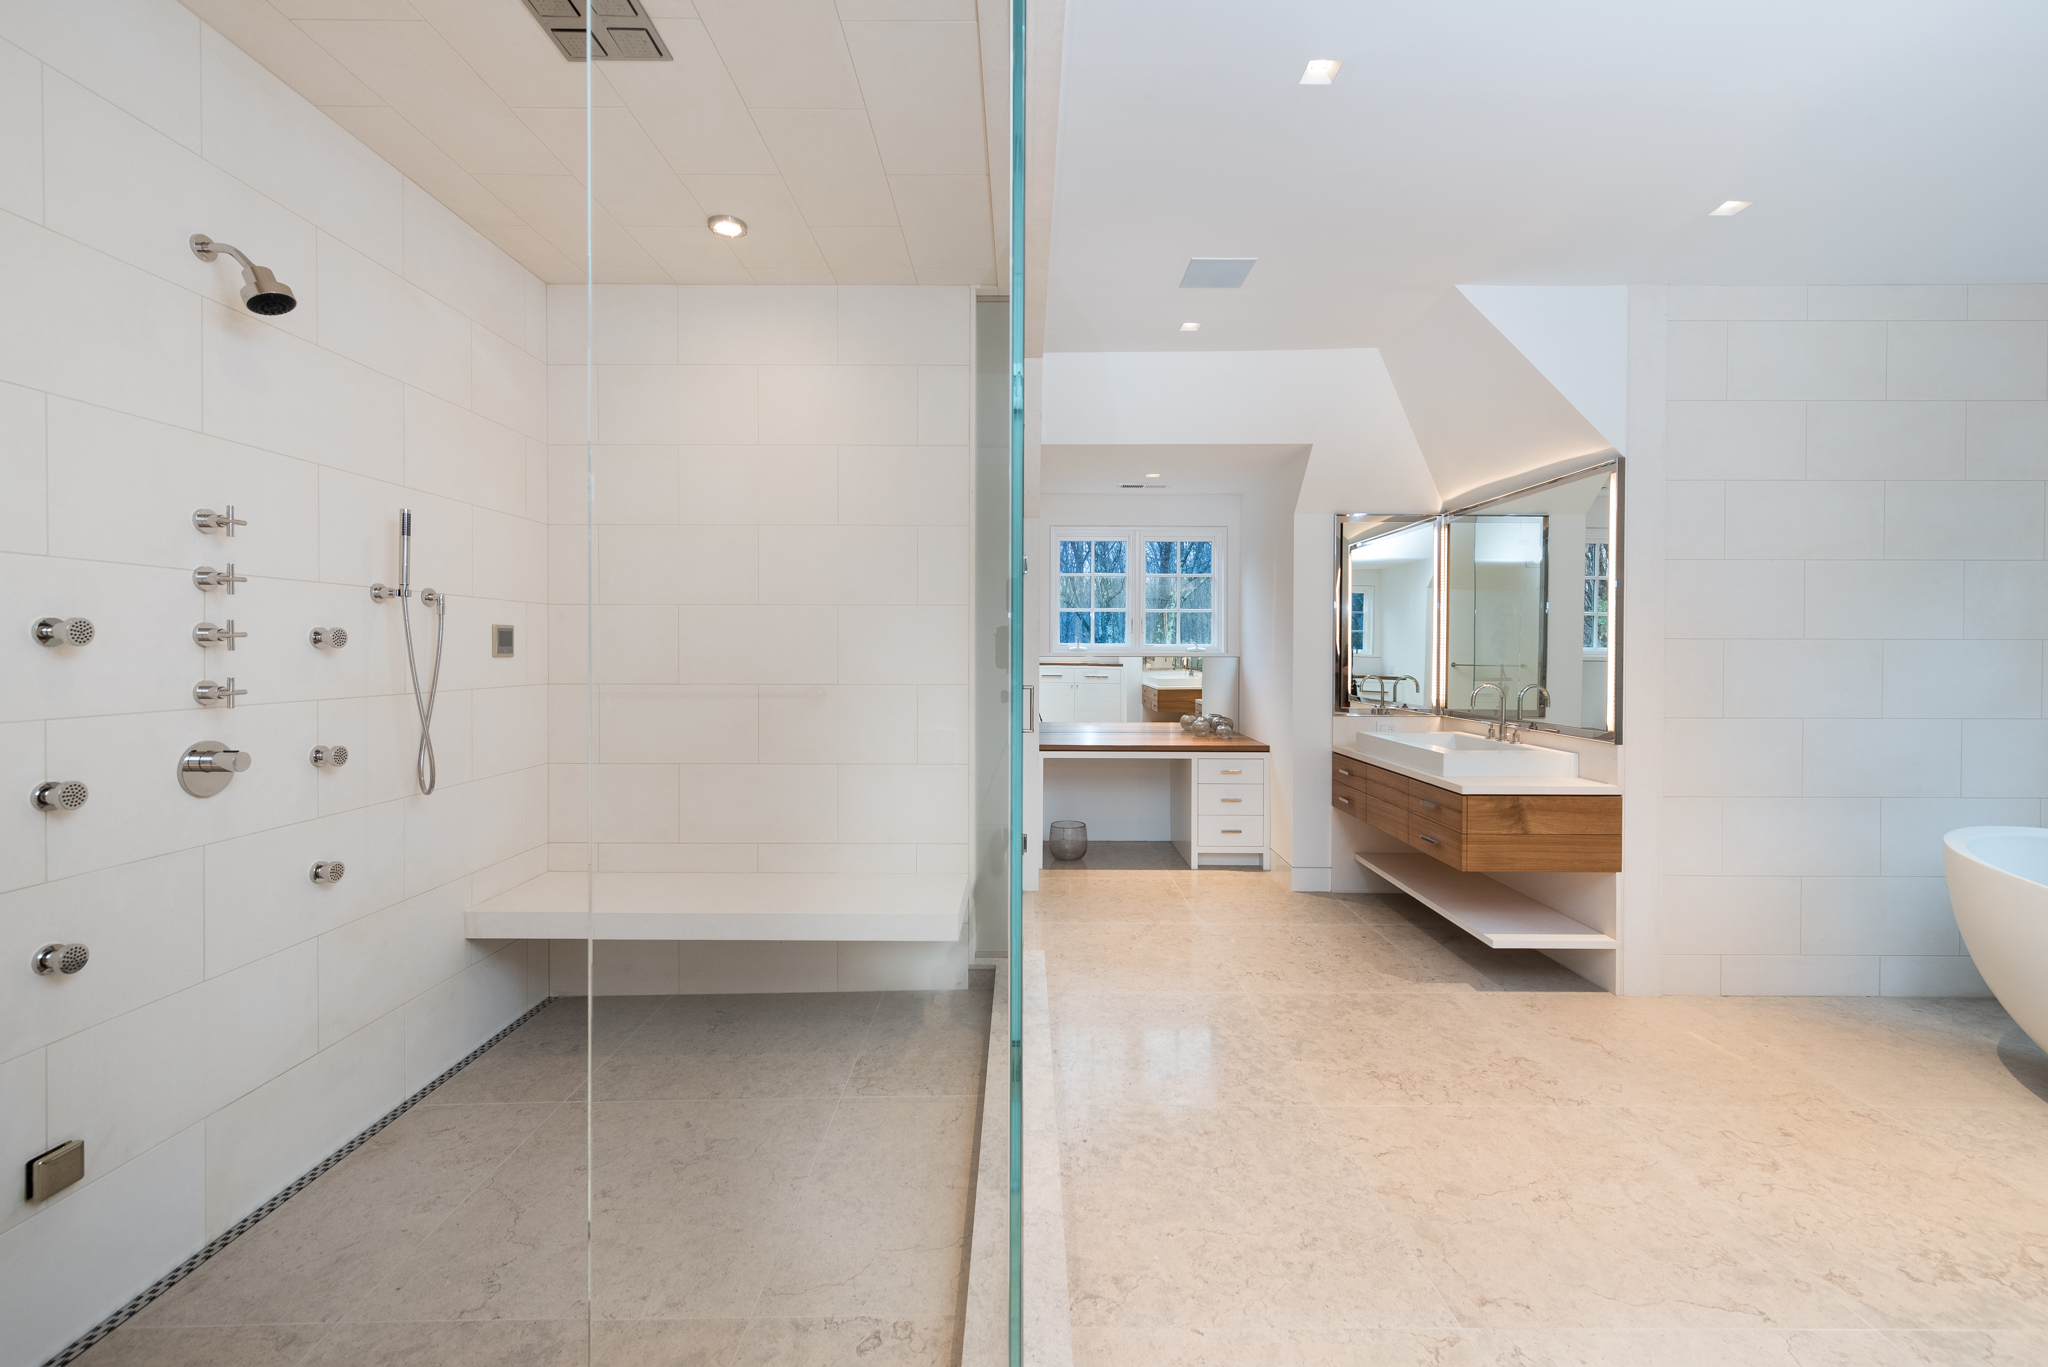 OVERALL:  The shower includes a ceiling mounted rain head, a wall mounted shower head, a handheld shower and 6 body sprays - all of which can be turned on simultaneously without any water pressure reduction.  The floating limestone bench allows a place to sit in the steam shower.